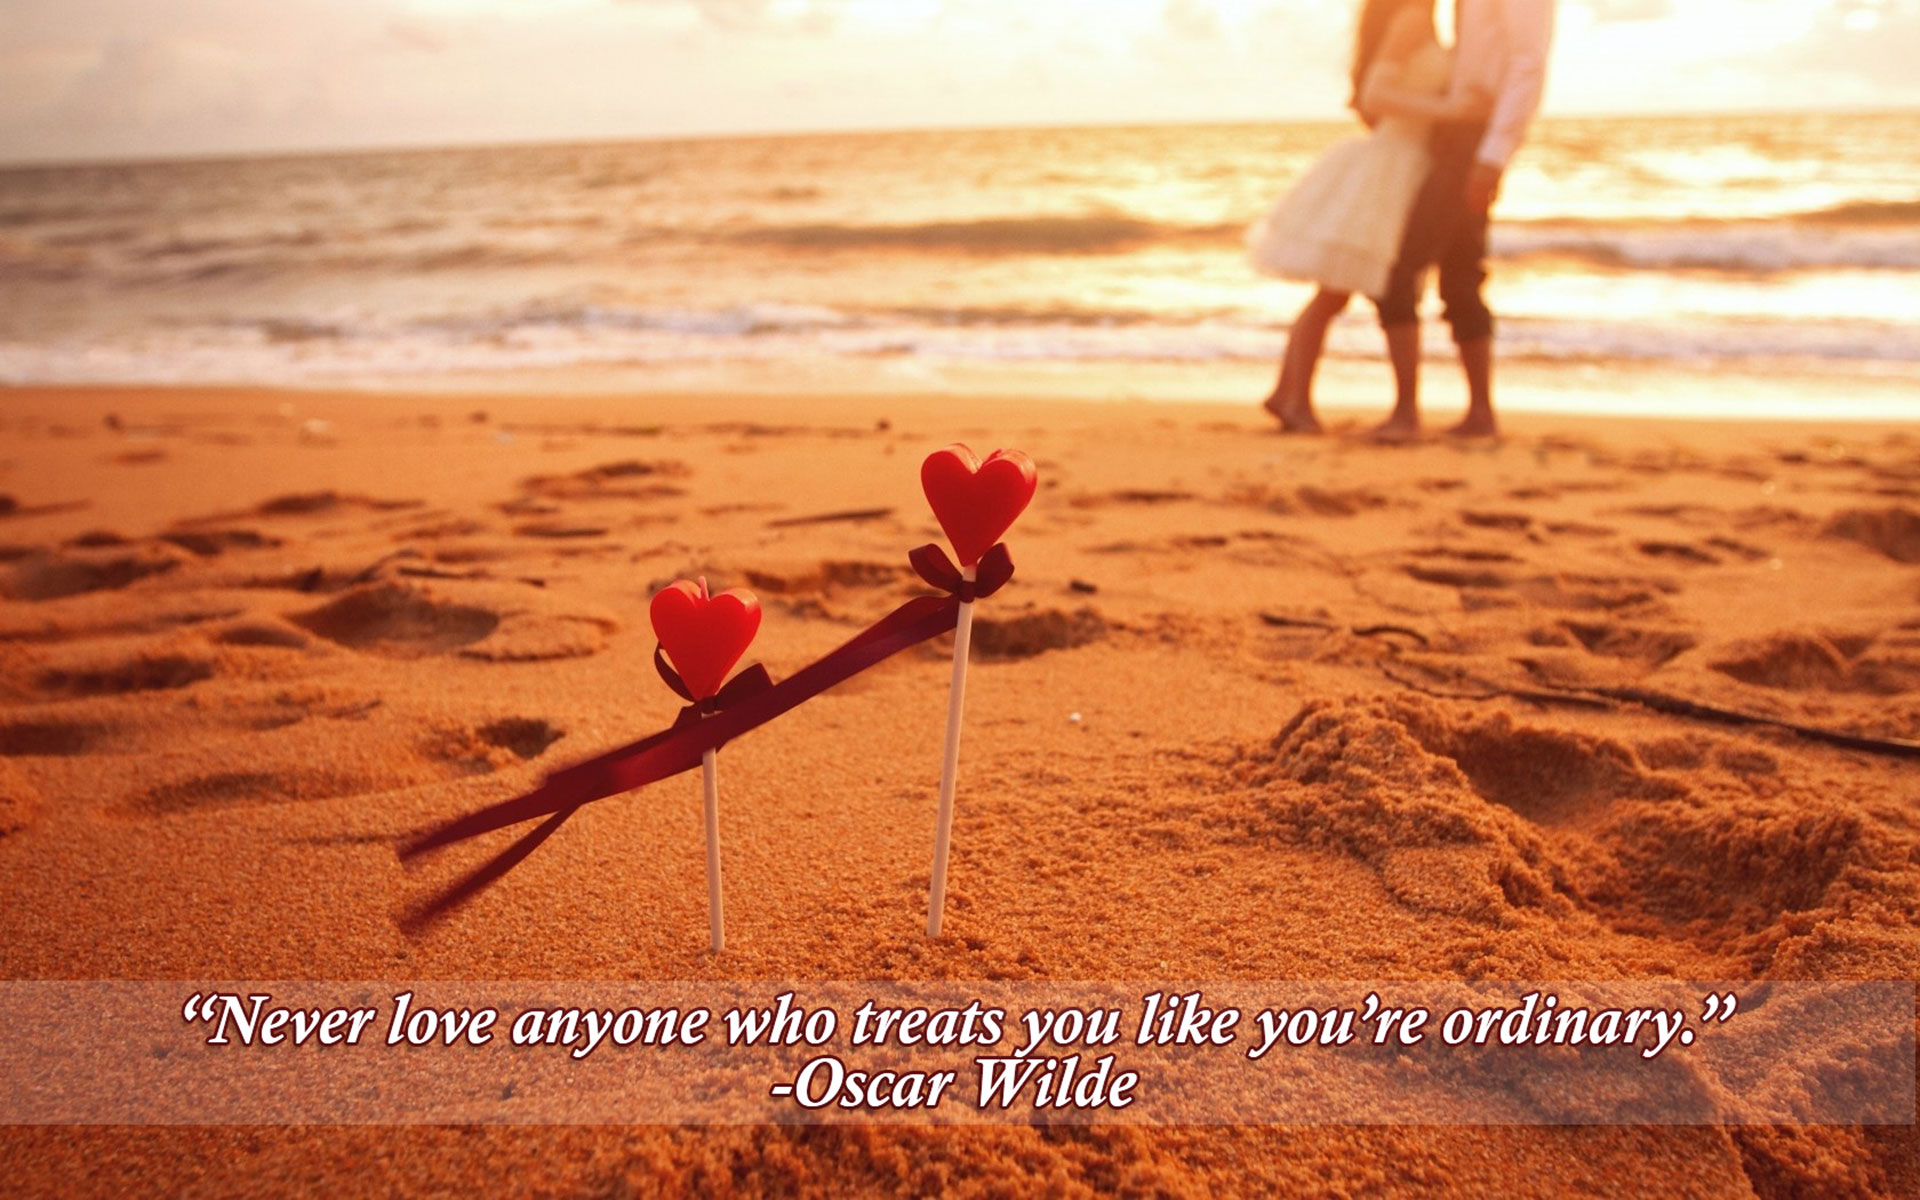 Hd wallpaper quotes on love - Images Of Love Quotes